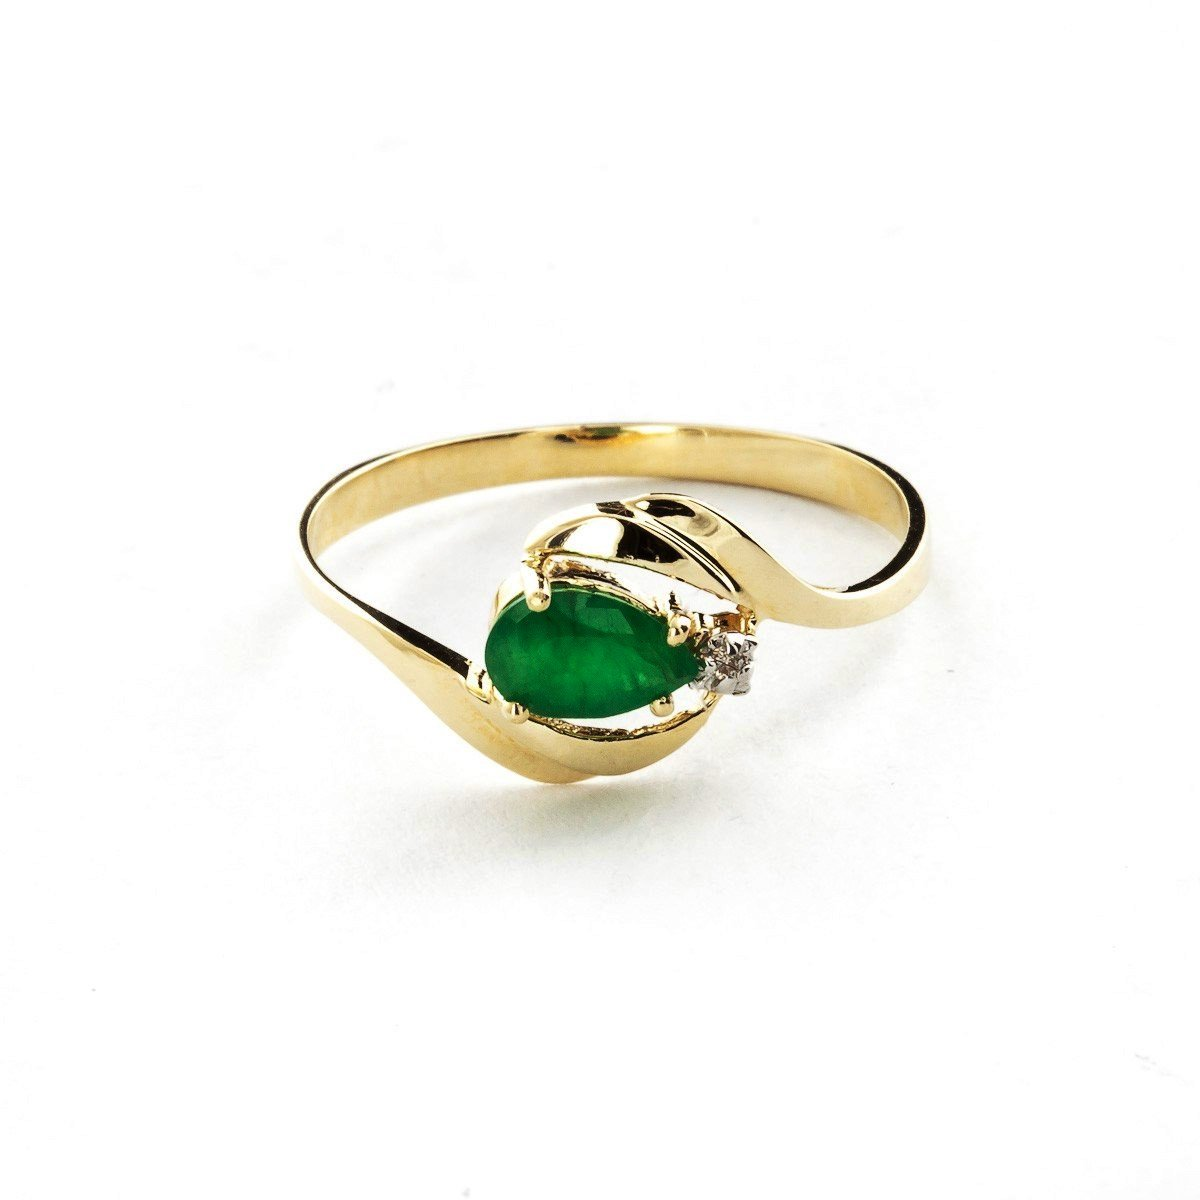 Pear Shape Natural Emerald Diamond Ring Solid 14k Yellow Gold 2117-Y